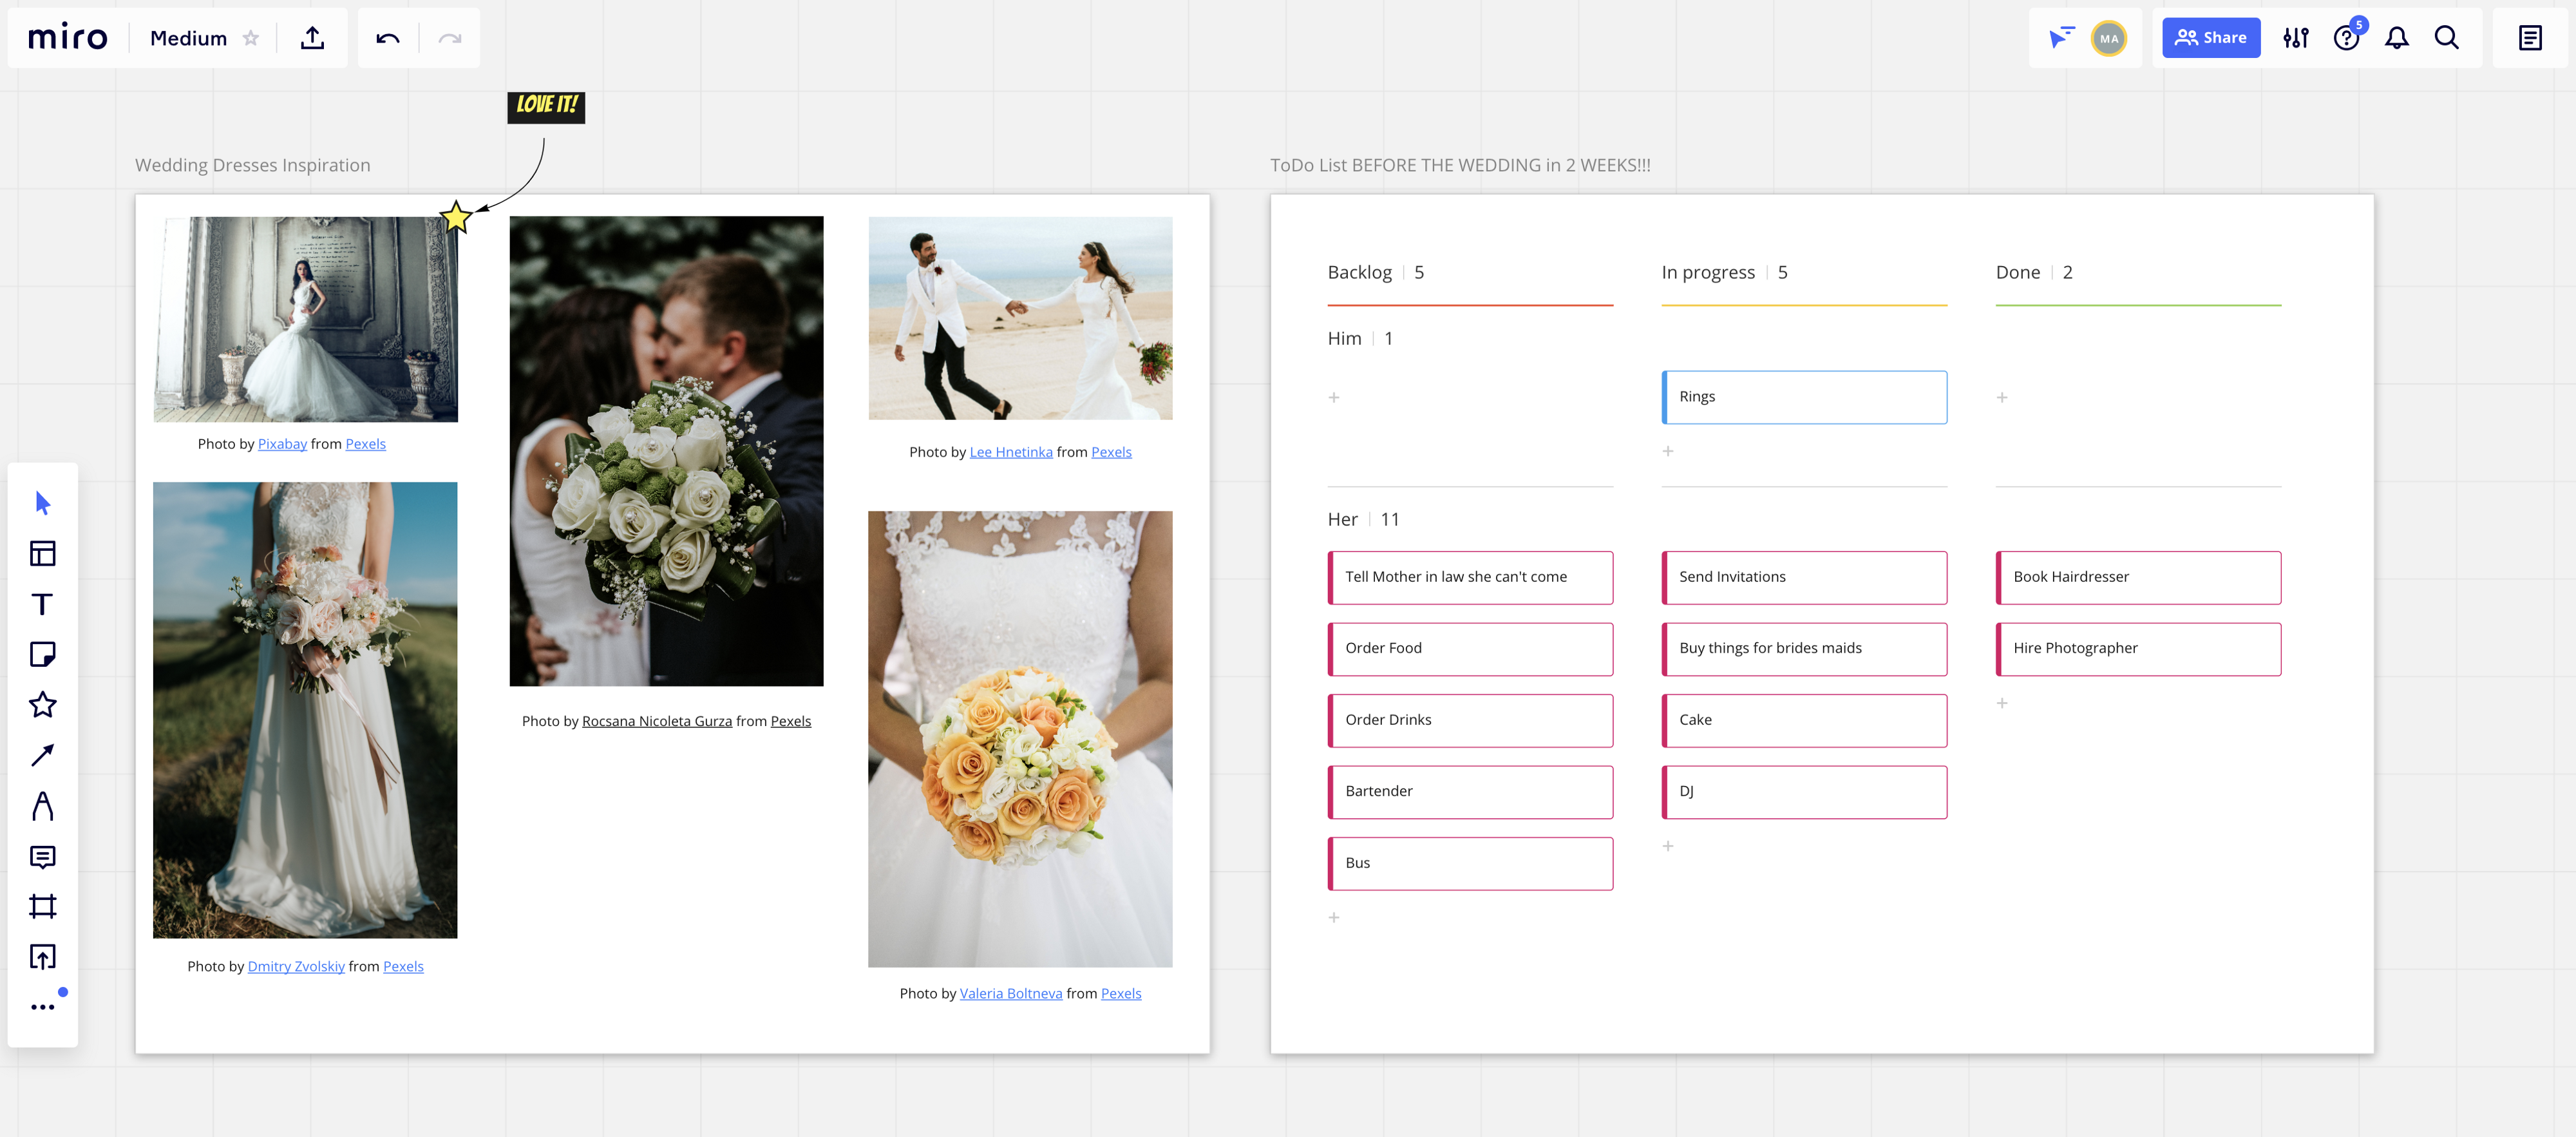 screenshot of a test board containing wedding dresses and a kanban board for planning